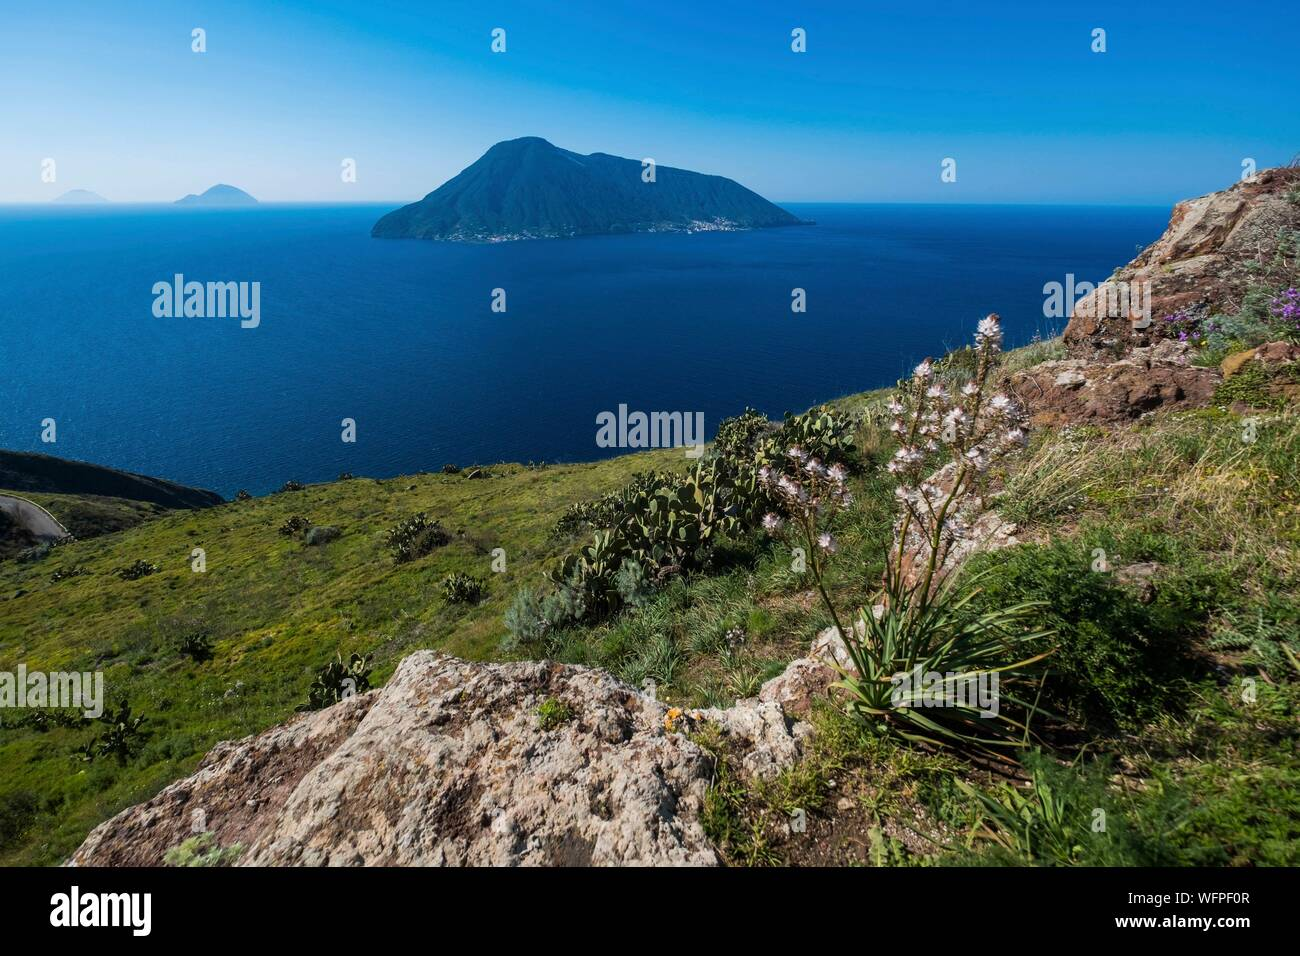 Italy, Sicily, Eolian Islands listed as World Heritage by UNESCO, Lipari, islands of Salina, Alicudi and Filicudi from chiesa vieja of Quattropani Stock Photo